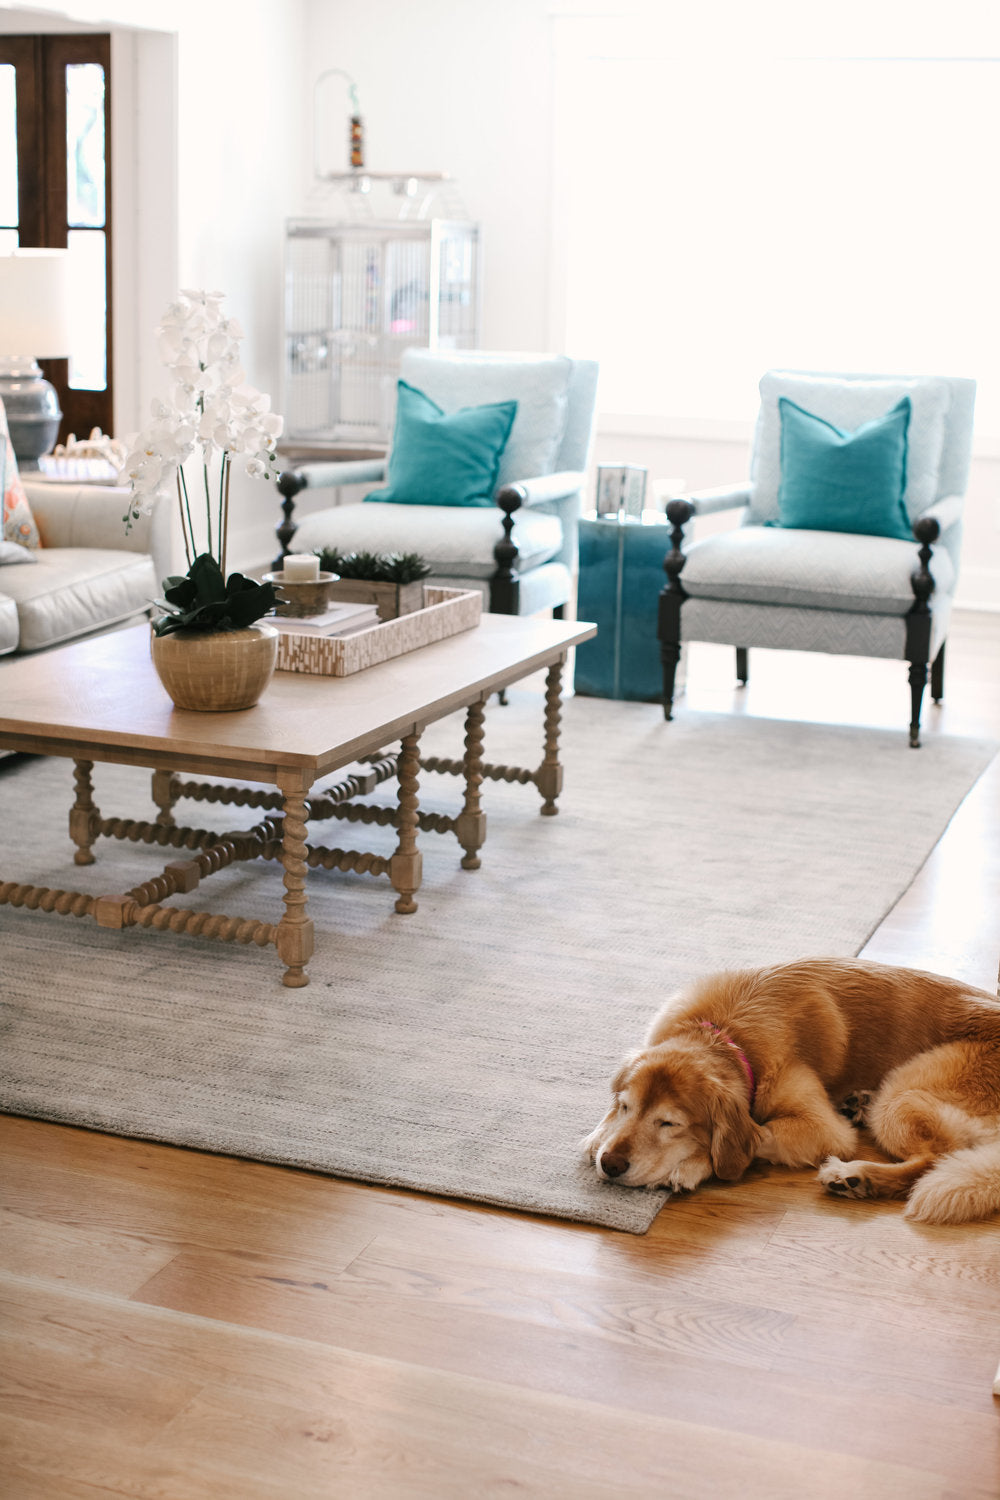 Collection of Cool Living Room Rugs 9x12 Central that you must See @house2homegoods.net